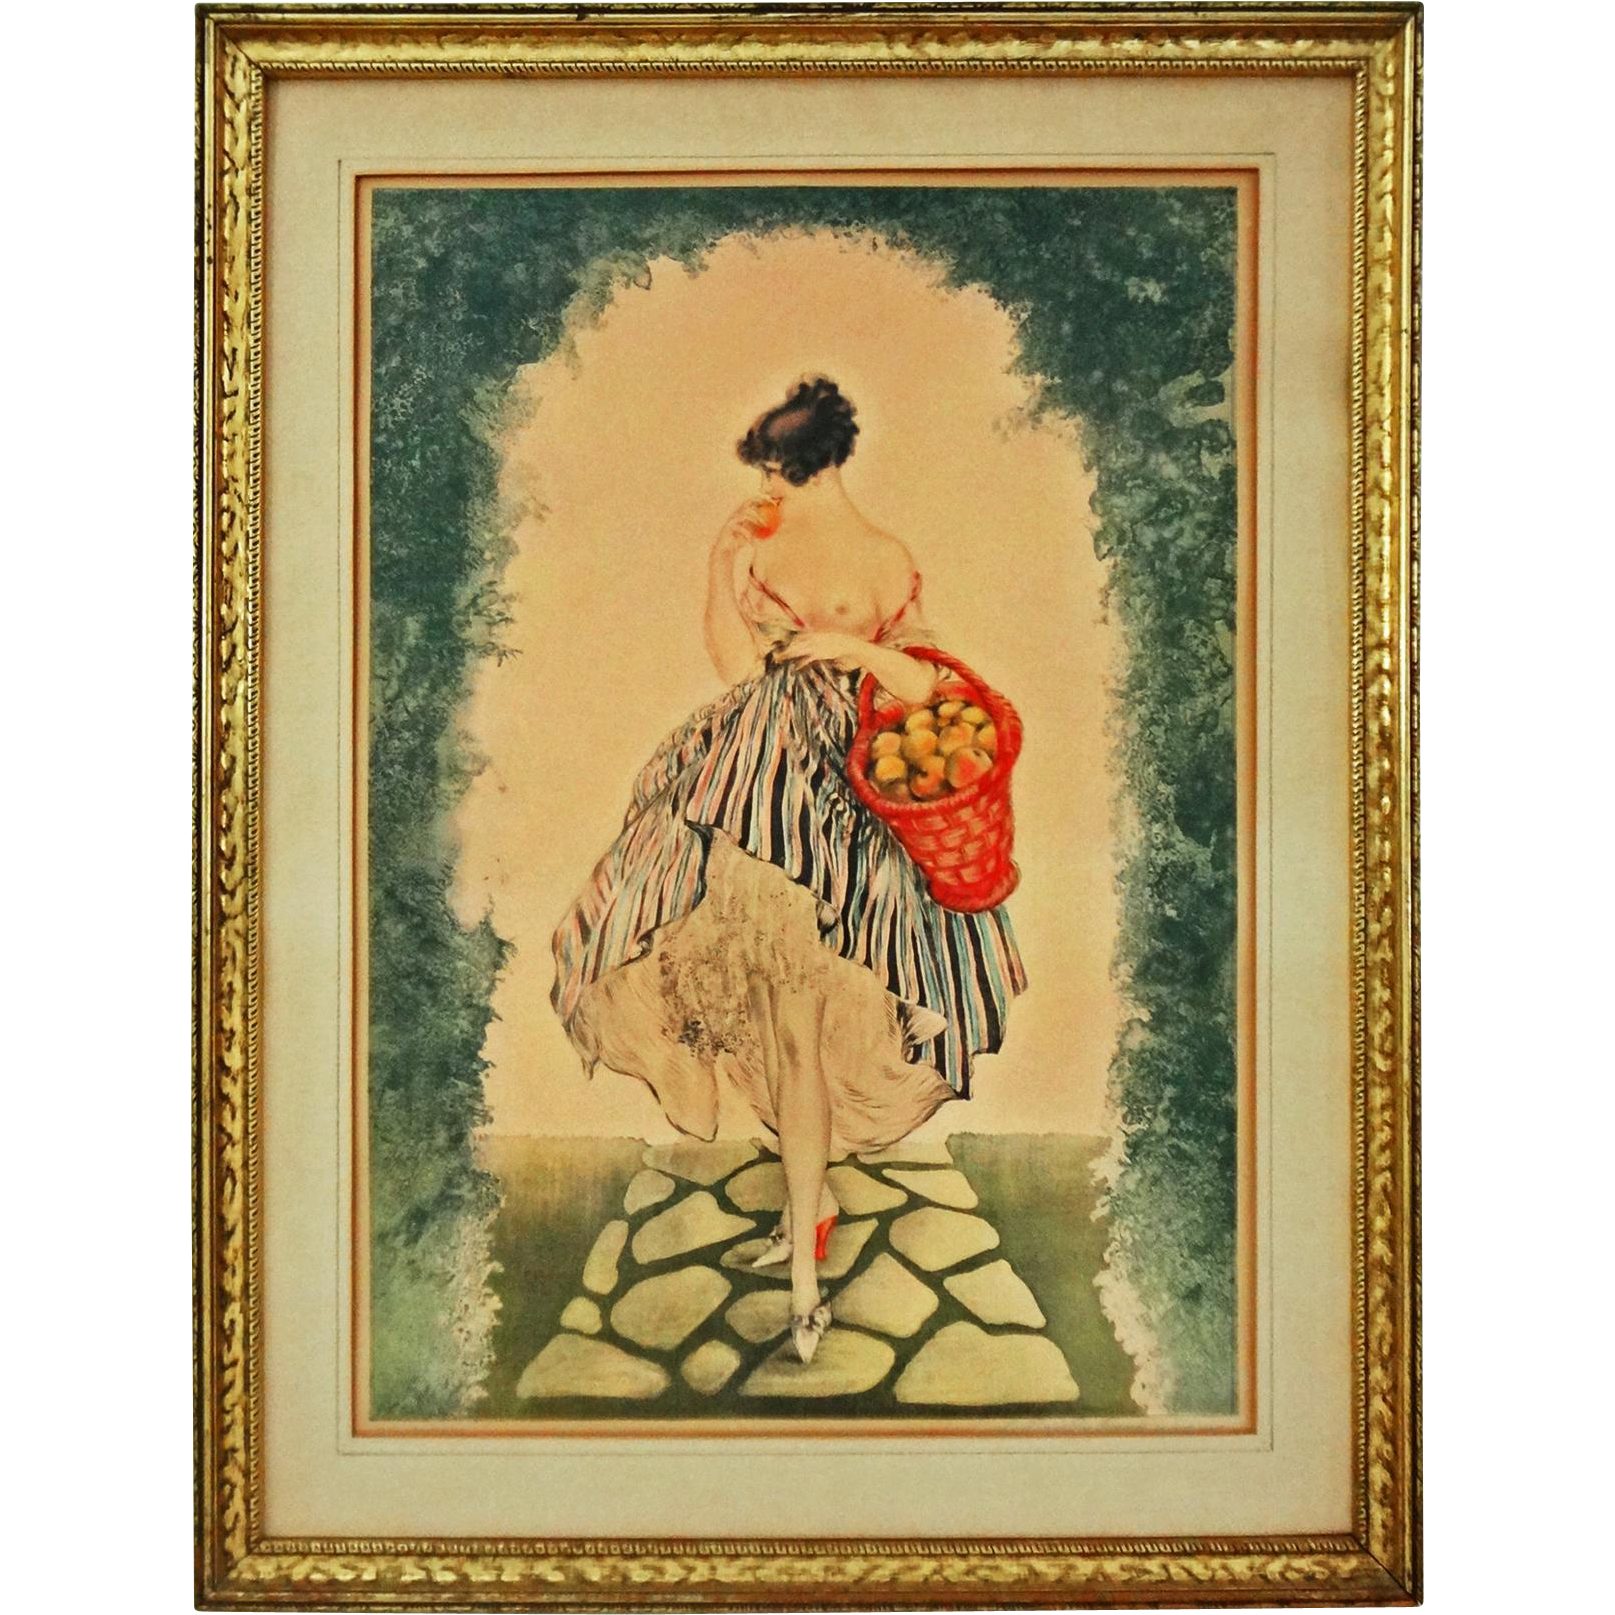 Basket of Apples / Le Panier de Pommes Print after Icart Framed - 20th Century, New York